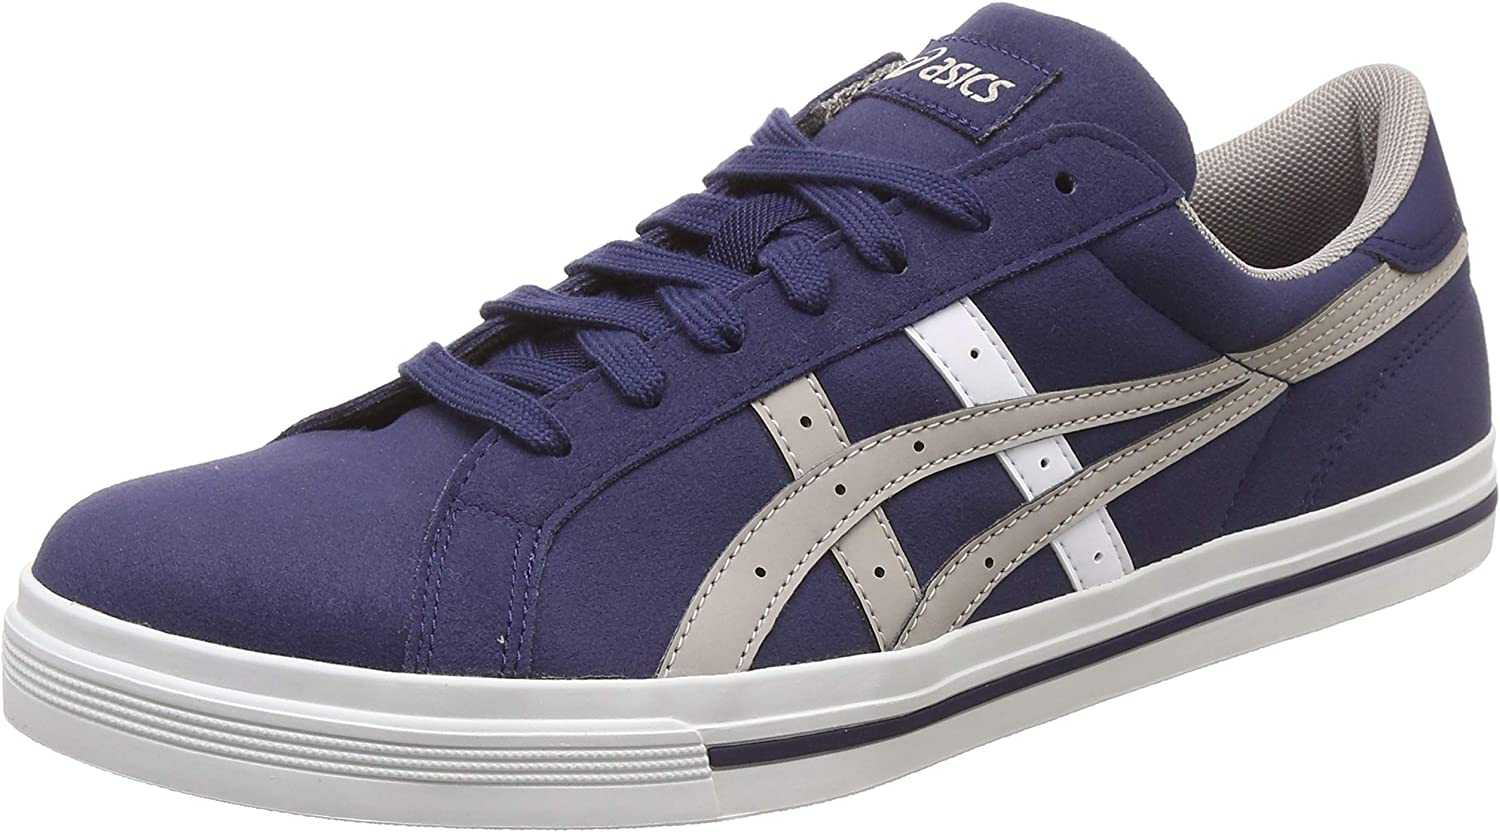 ASICS Classic Tempo, shoes for Men